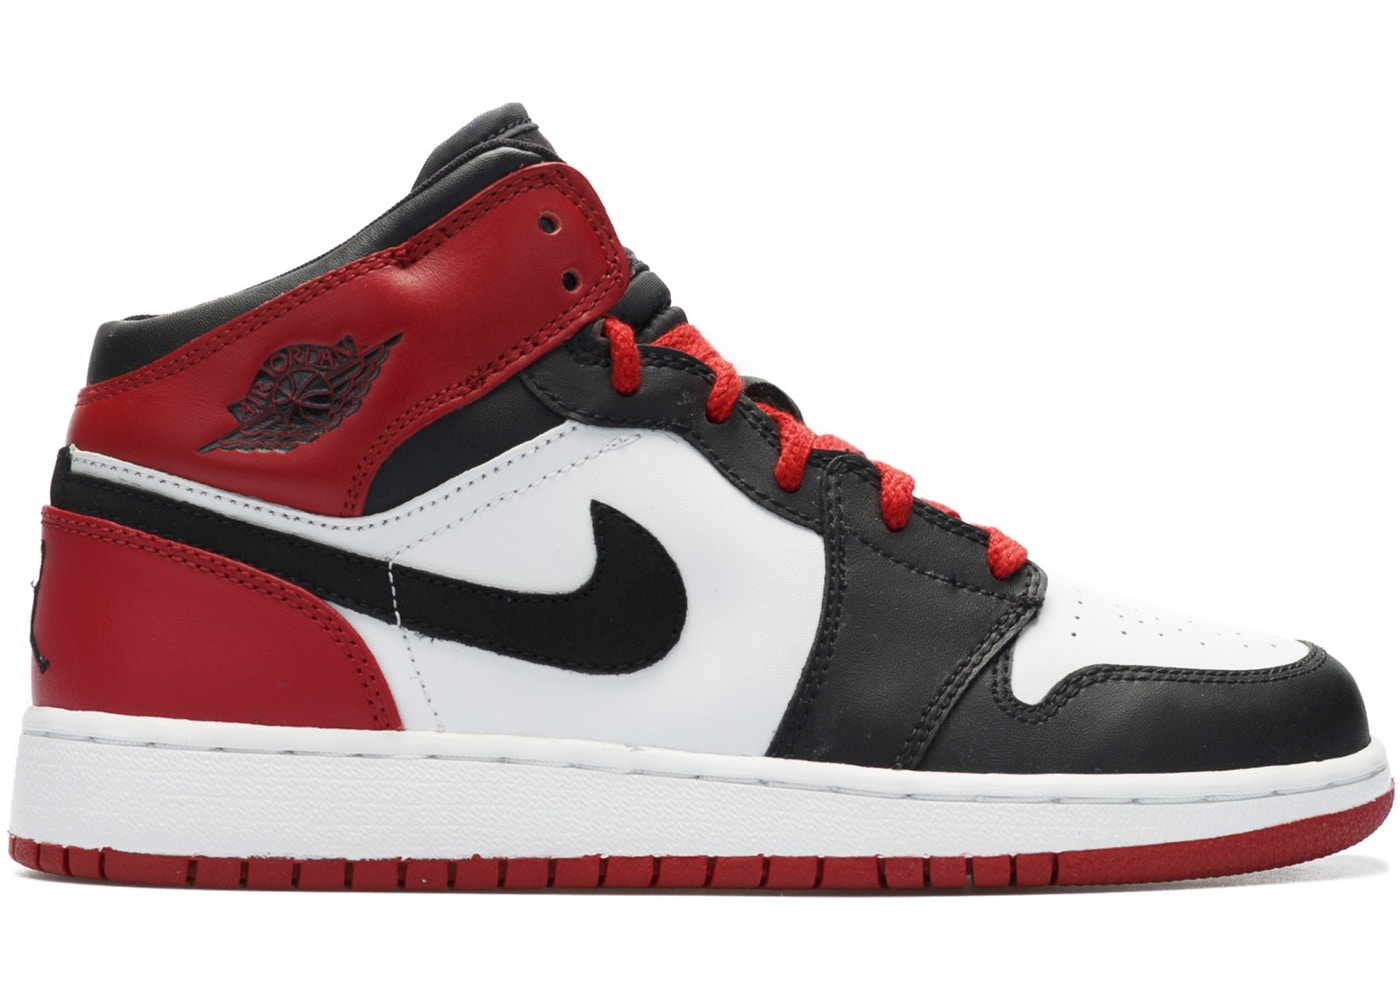 404b6154 Jordan 1 Retro Old Love (GS) - 307383-102